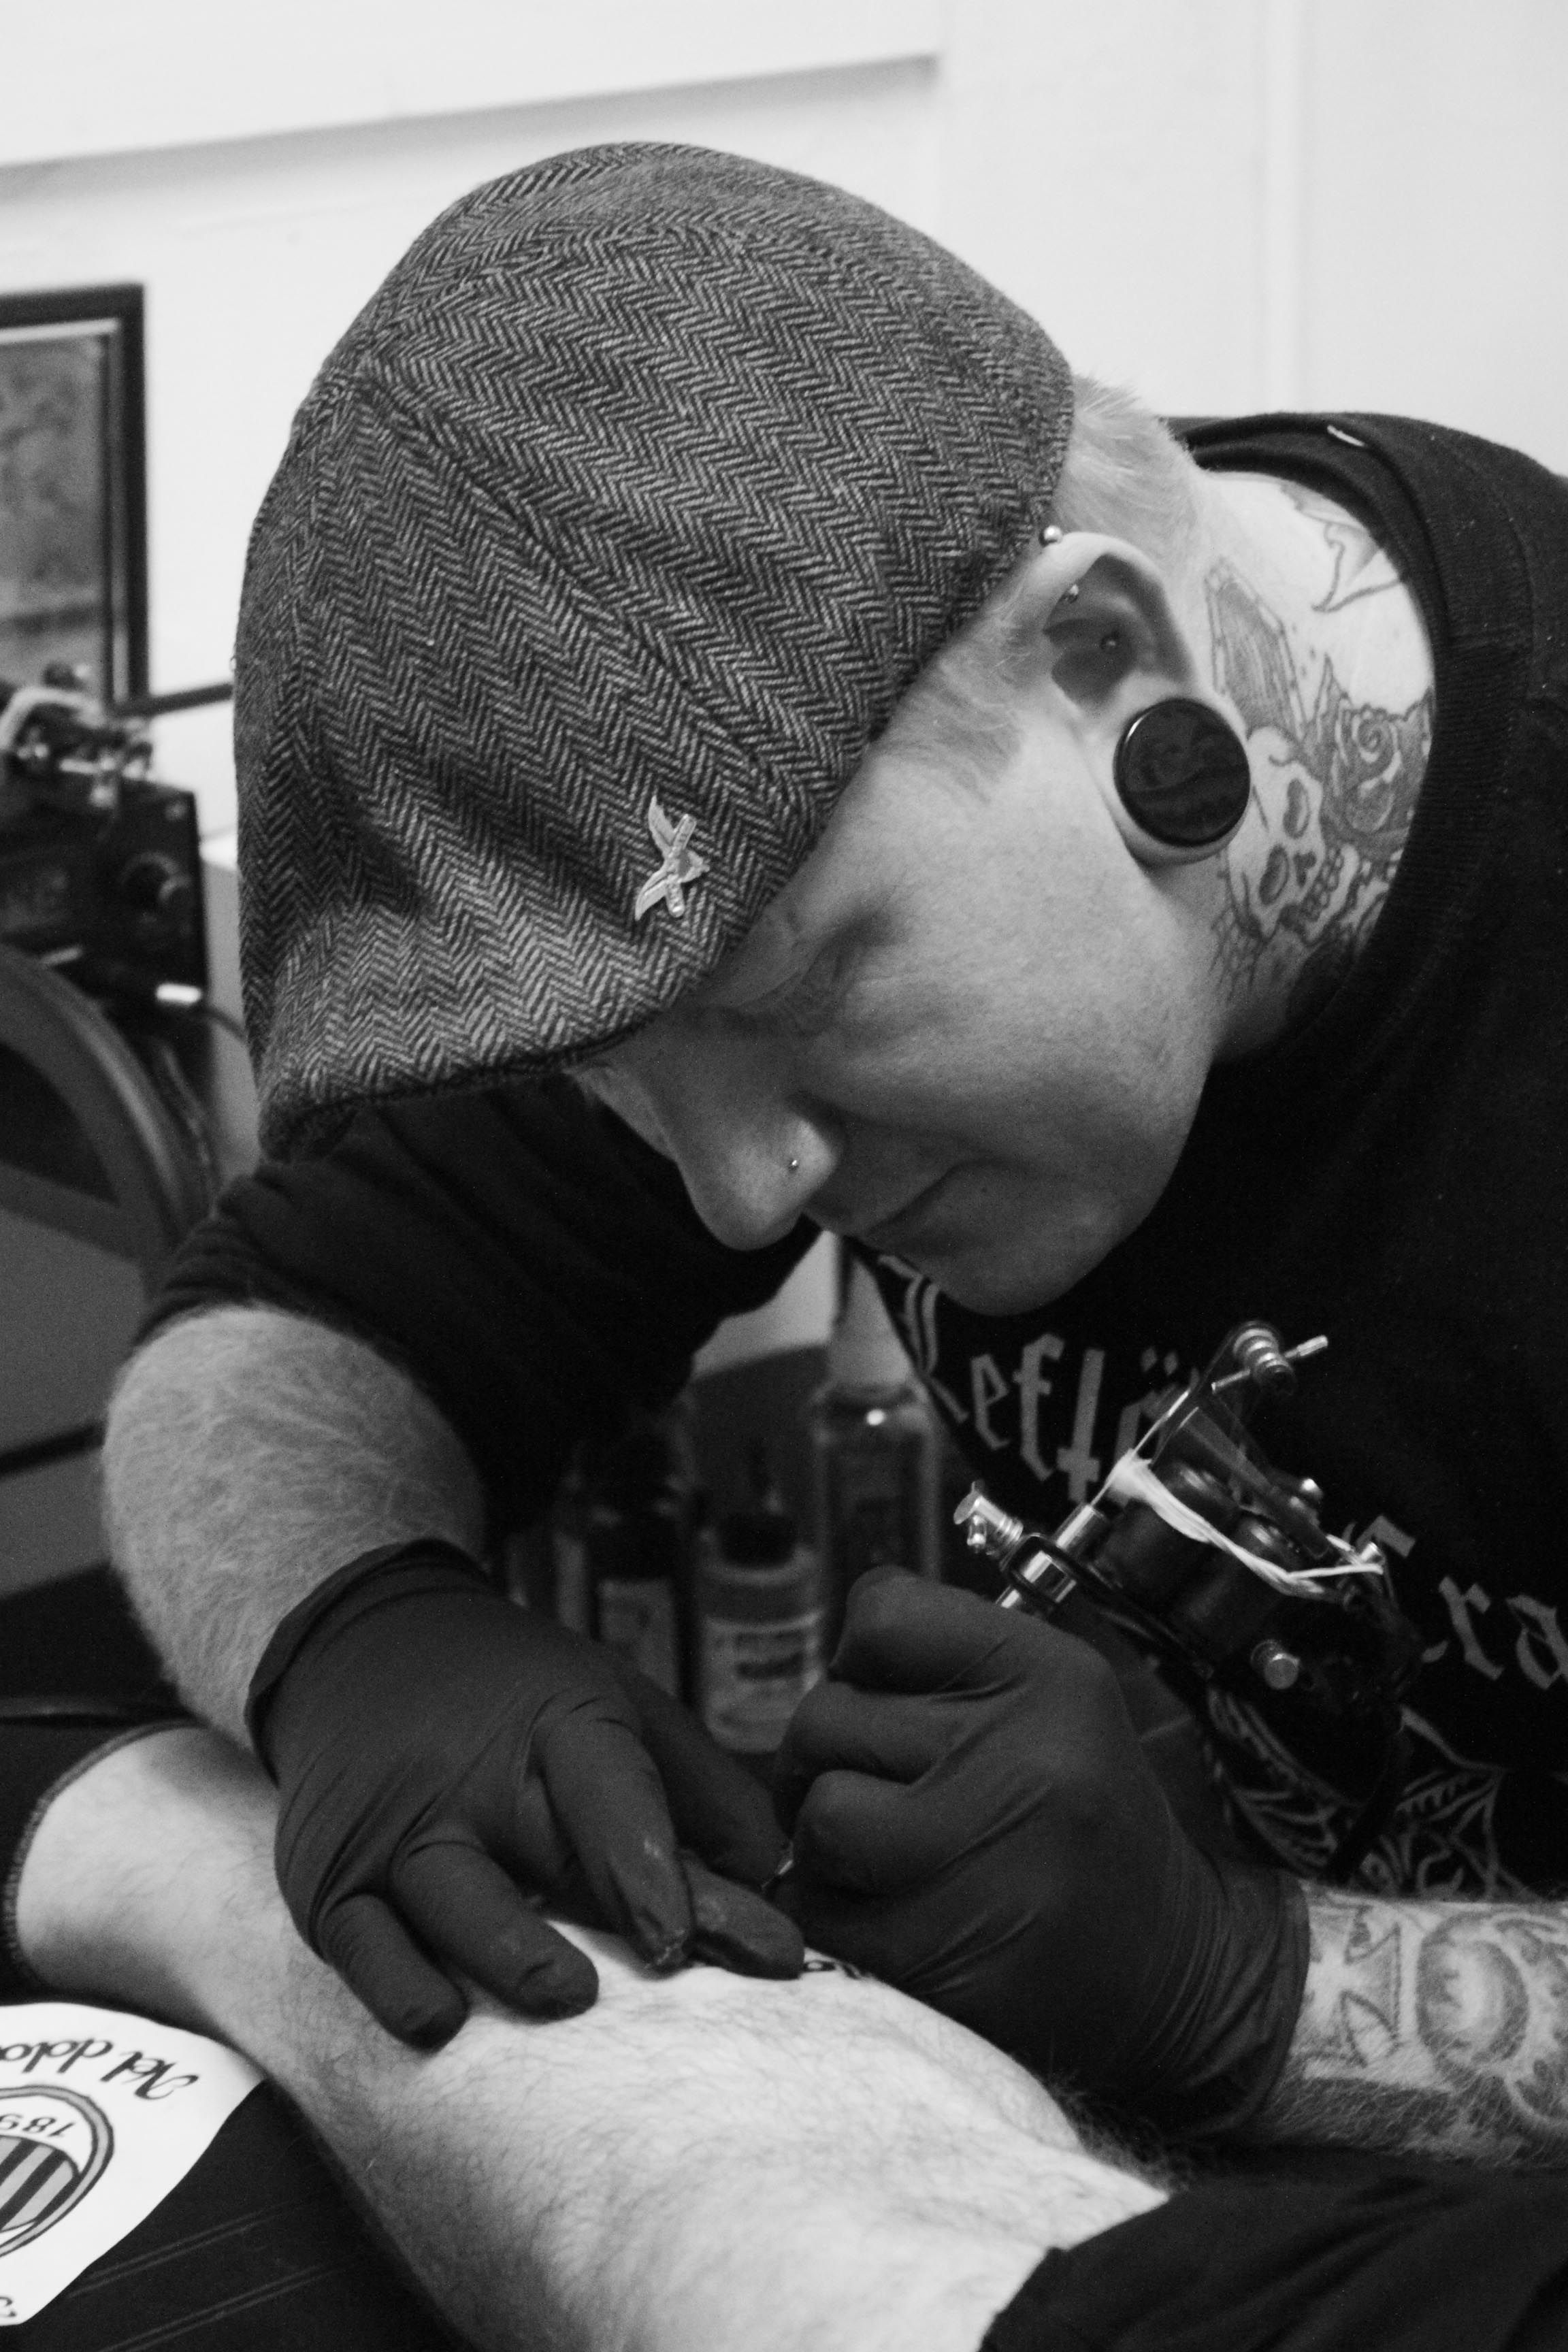 Brass Monkey Tattoo - Dudley | Show Me a Secret - IMAGES TAKEN BY ME ...